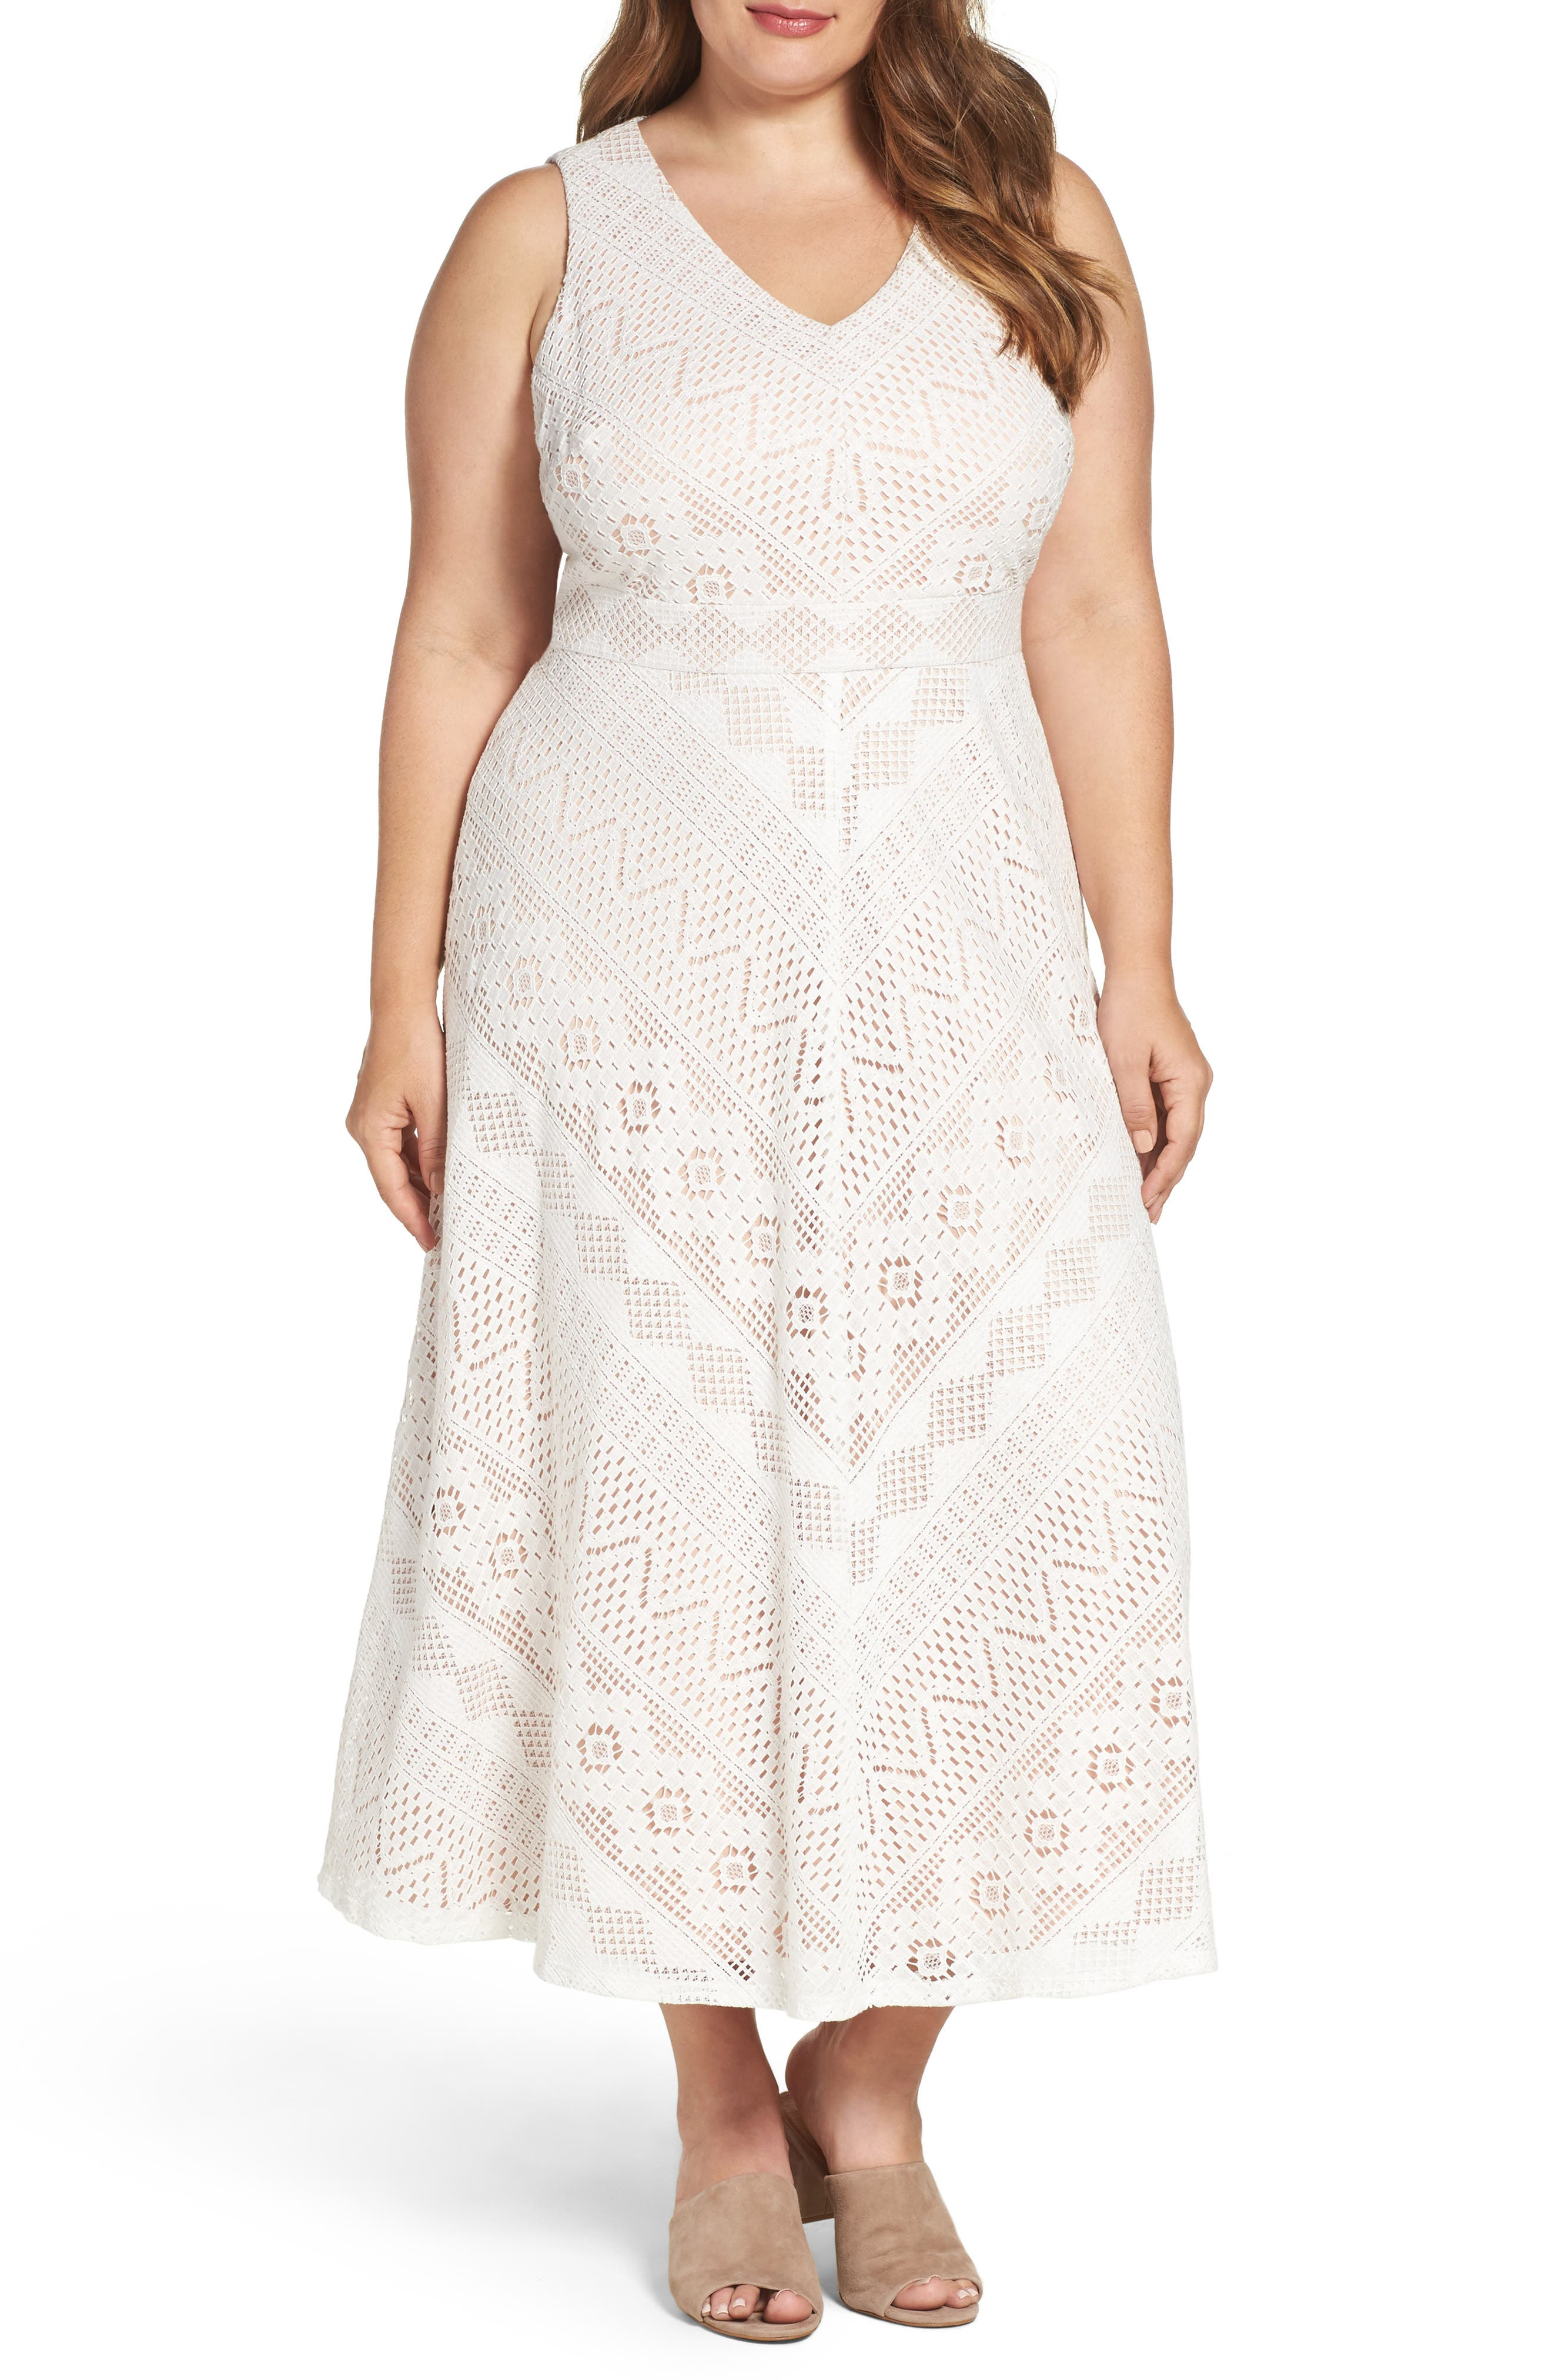 Main Image - Vince Camuto Mitered Lace Midi Dress (Plus Size)